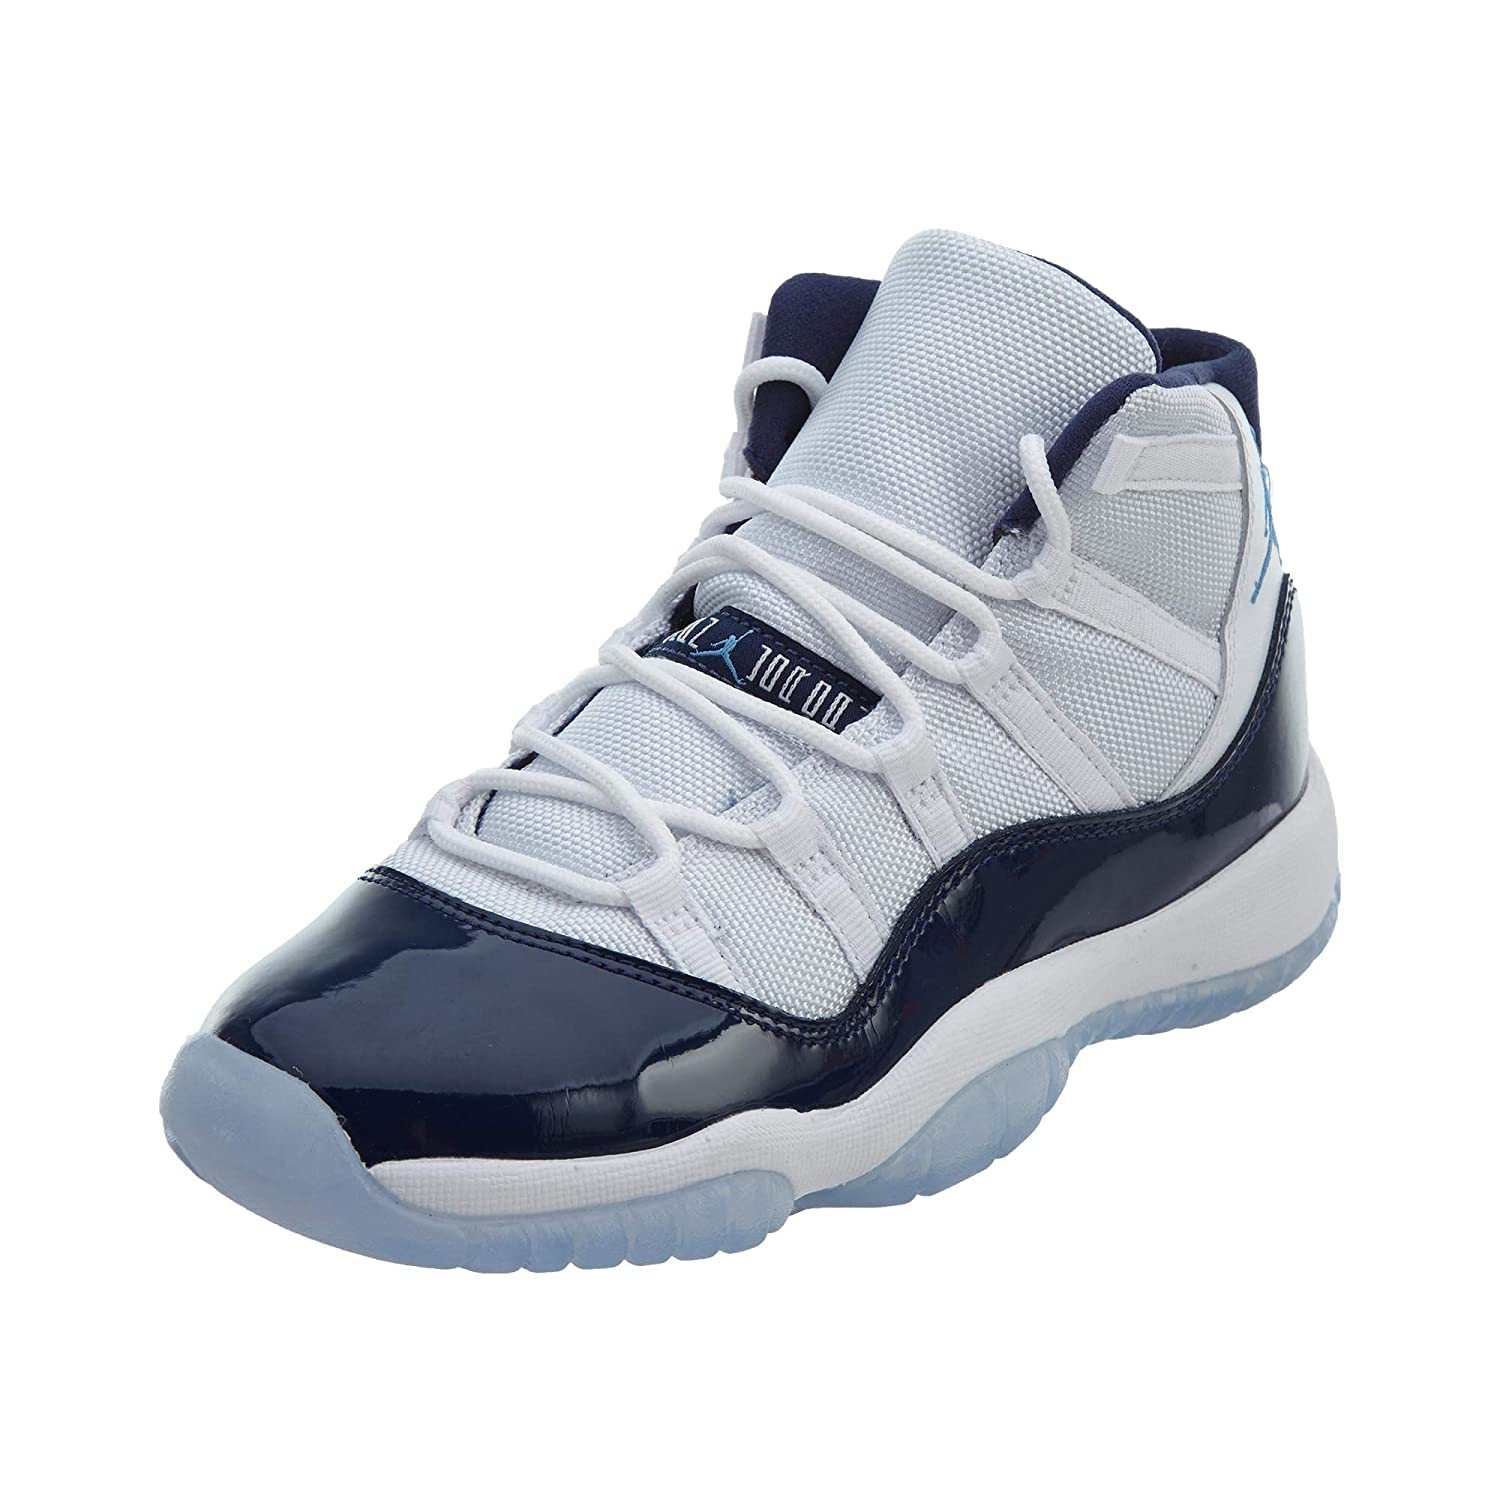 online retailer 1f55d a39d6 Air Jordan 11 Basketball Shoe Youth Big Kids GS US Size 5